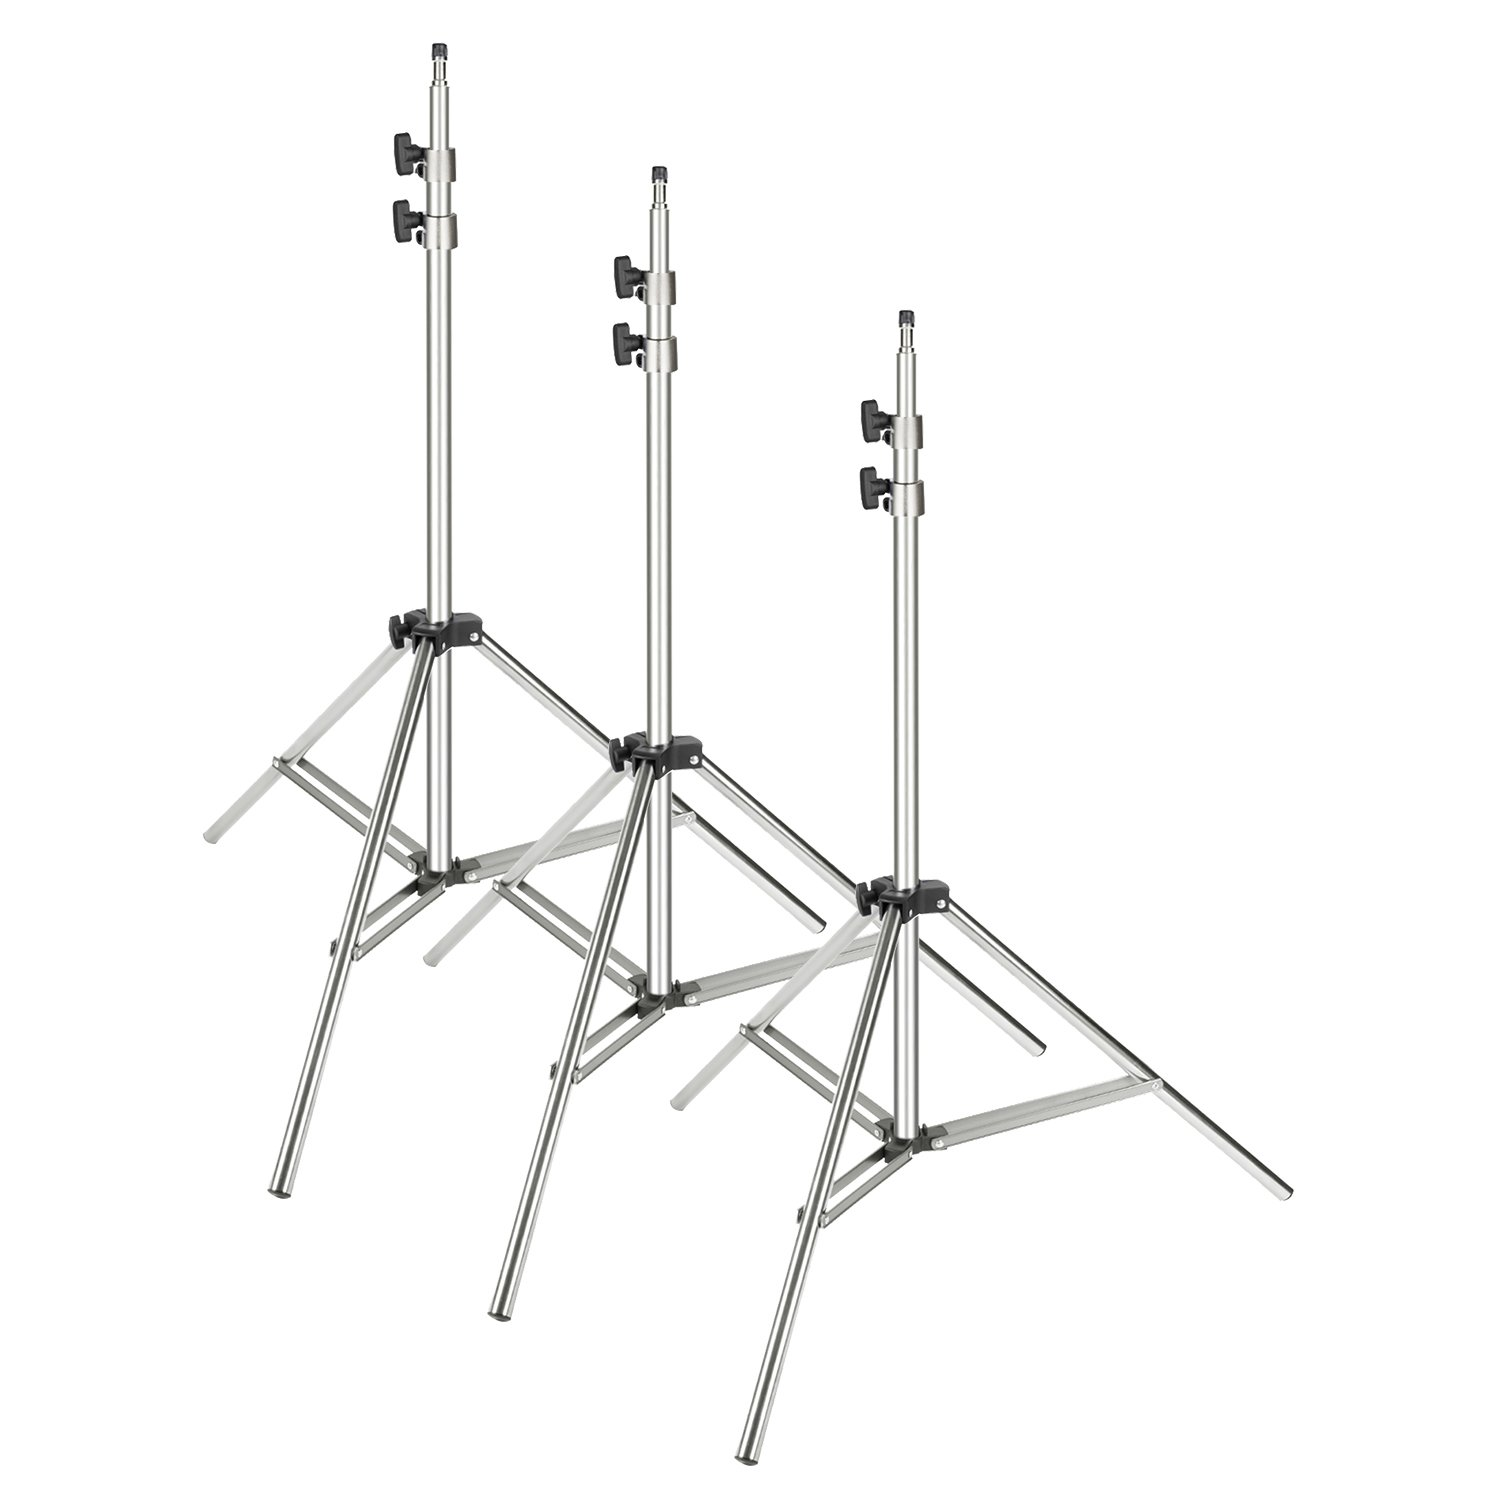 Neewer® 3 Pieces 6ft/75 inch/190cm Photography Tripod Light Stands For Studio Kits,Video, Lights, Softboxes, Reflectors, etc. 90087650@@1075